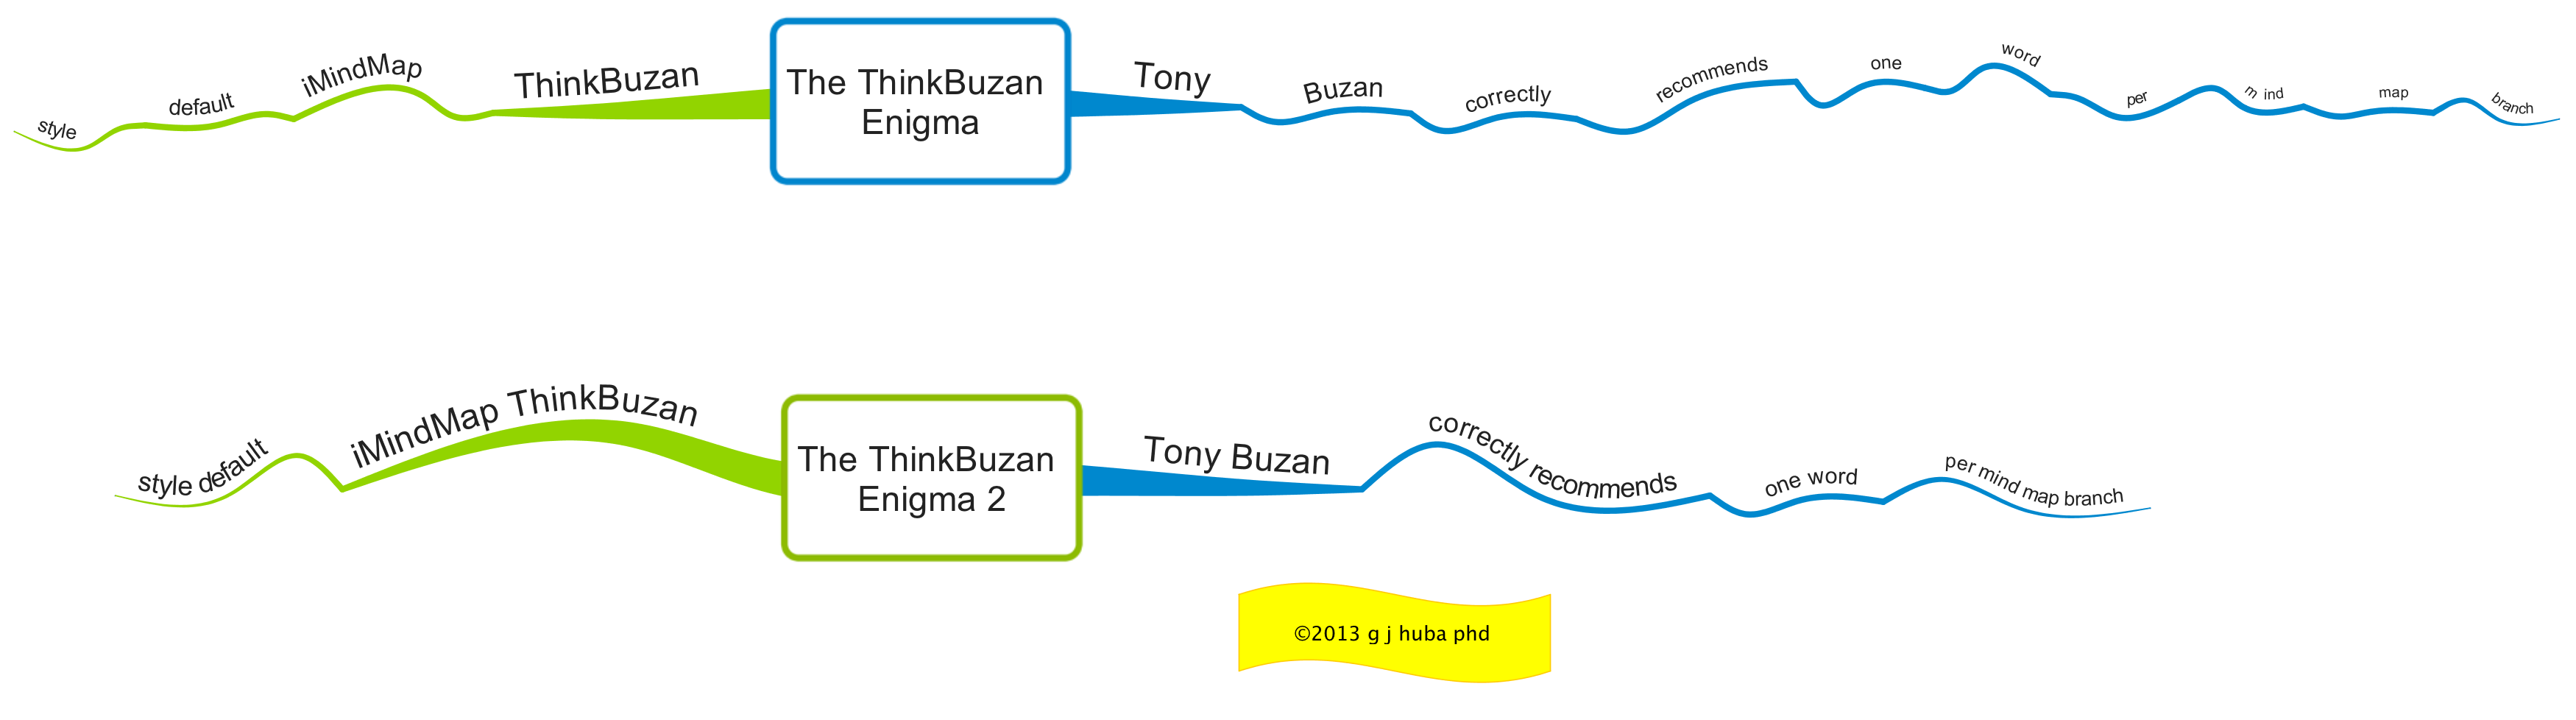 The ThinkBuzan Enigma